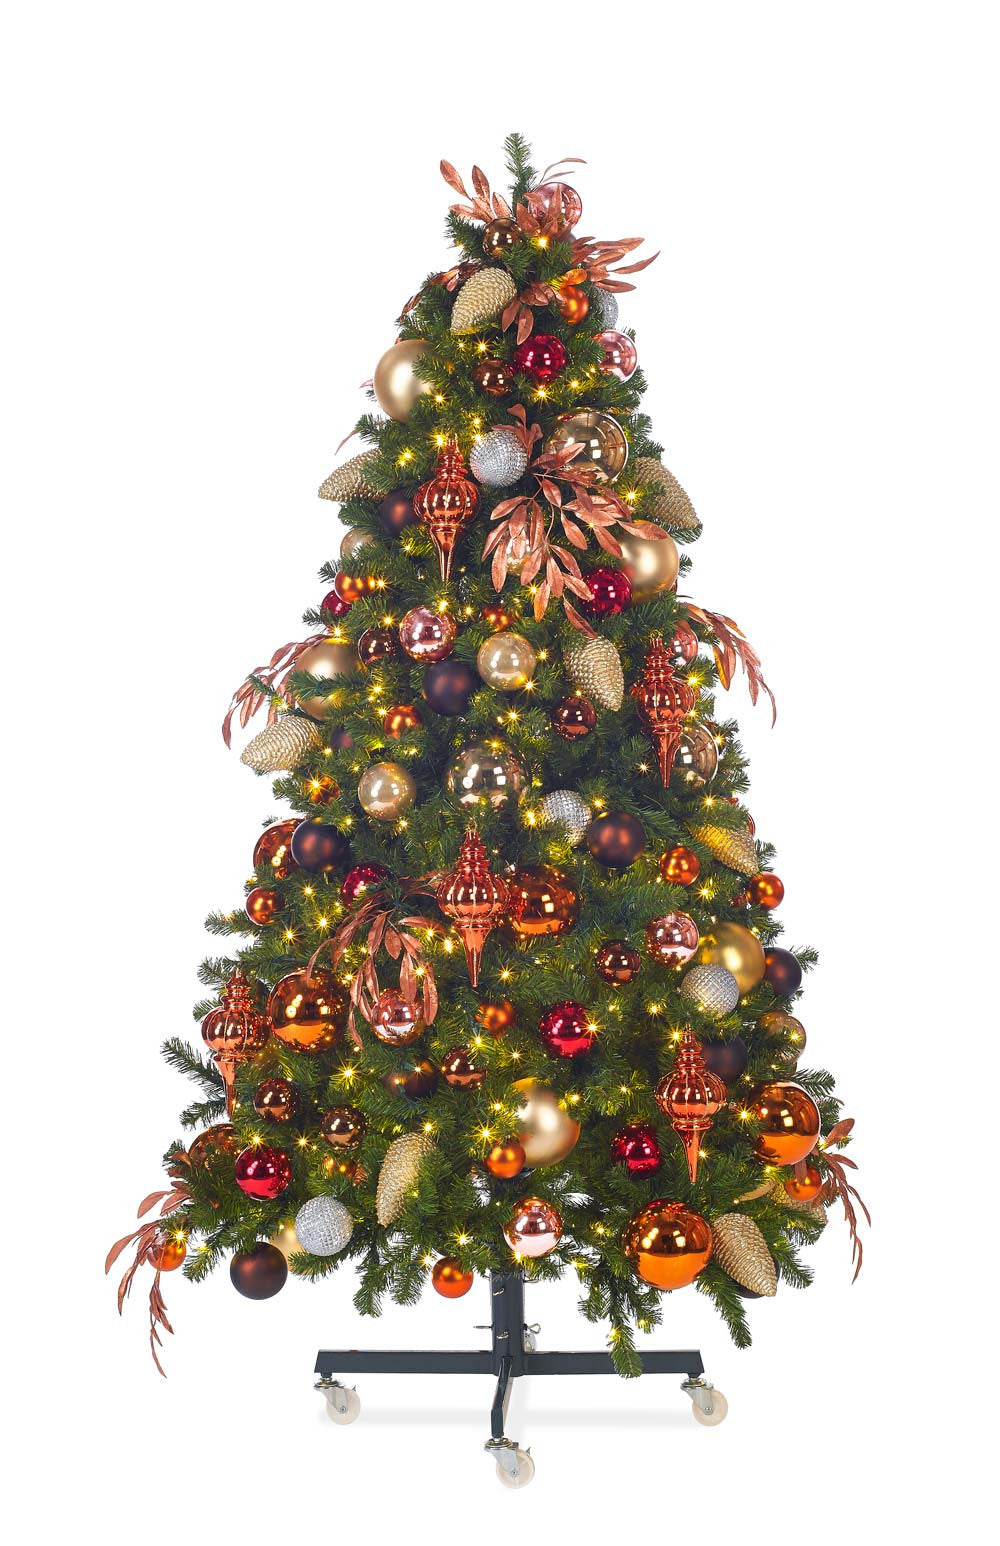 deluxe copper themed tree ornament package standard coopper themed tree ornament package - Copper Christmas Decorations